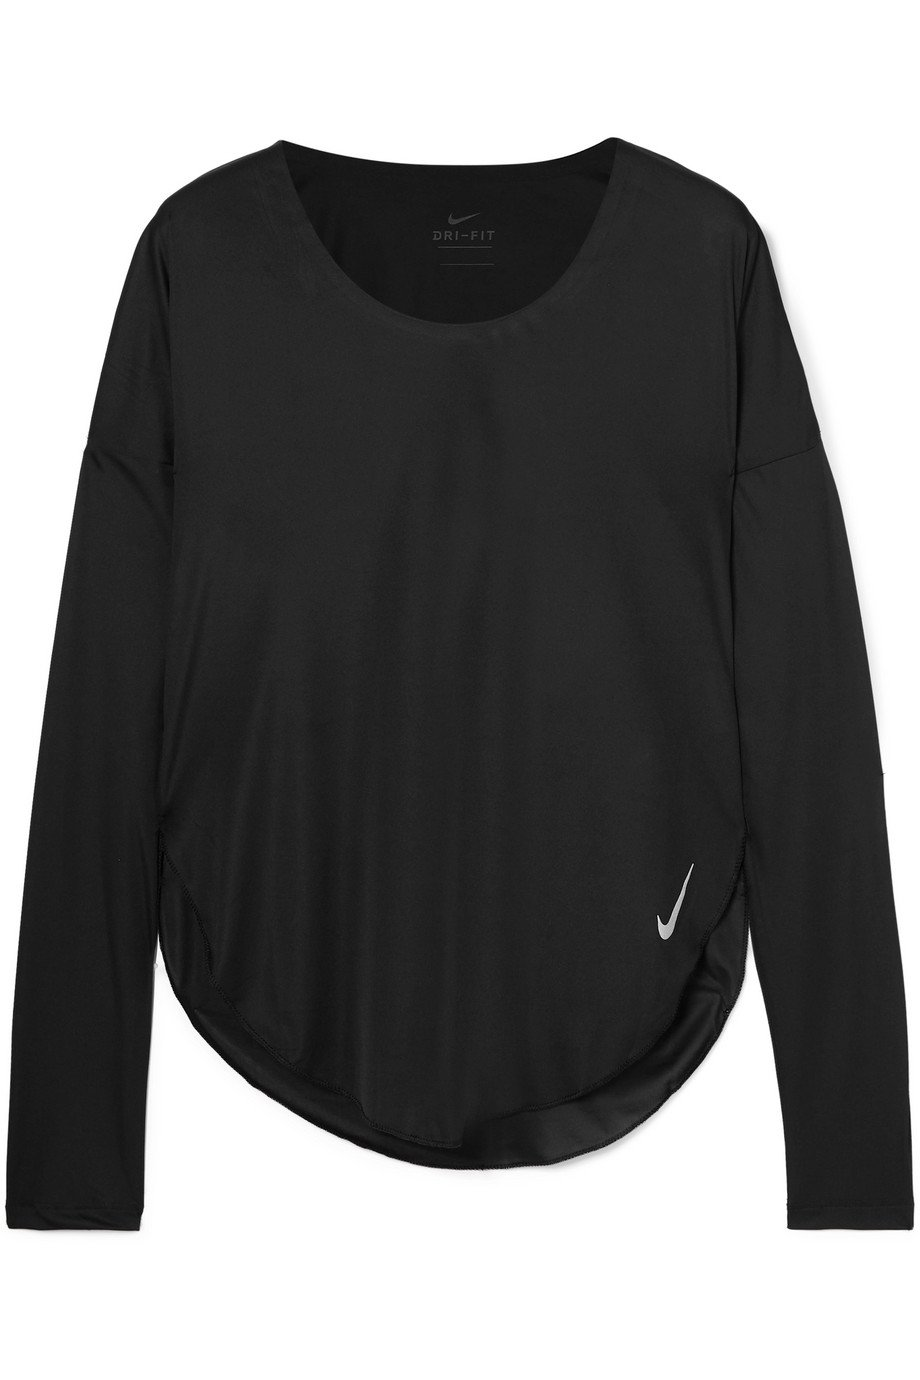 Nike | City Sleek Dri-FIT top | NET-A-PORTER.COM